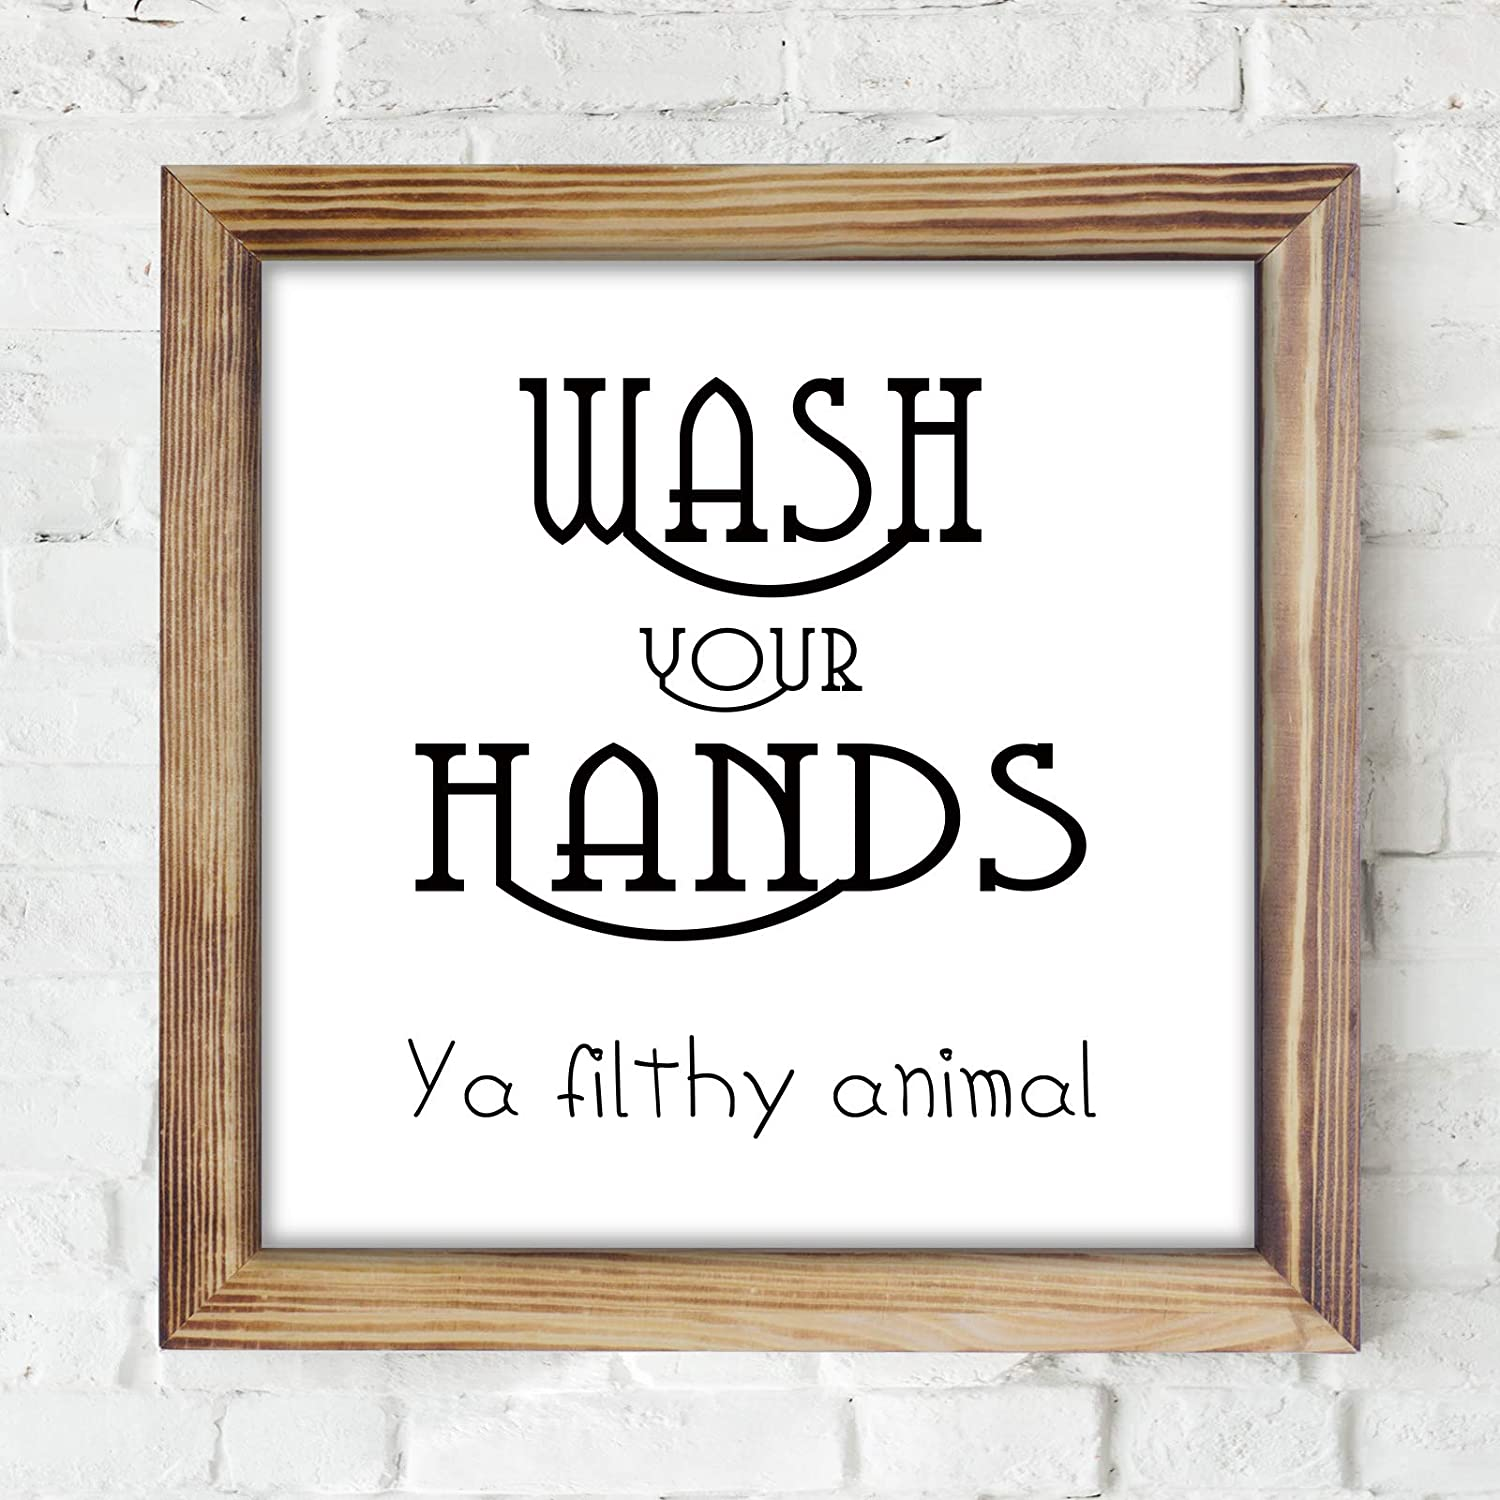 Wash Your Hands Ya Filthy Animal Sign - Funny Rustic Farmhouse Wall Decor Sign, Cute Guest Bathroom Wall Art, Rustic Home Decor, Restroom Sign for Bathroom Wall with Funny Quotes 12x12 Inch